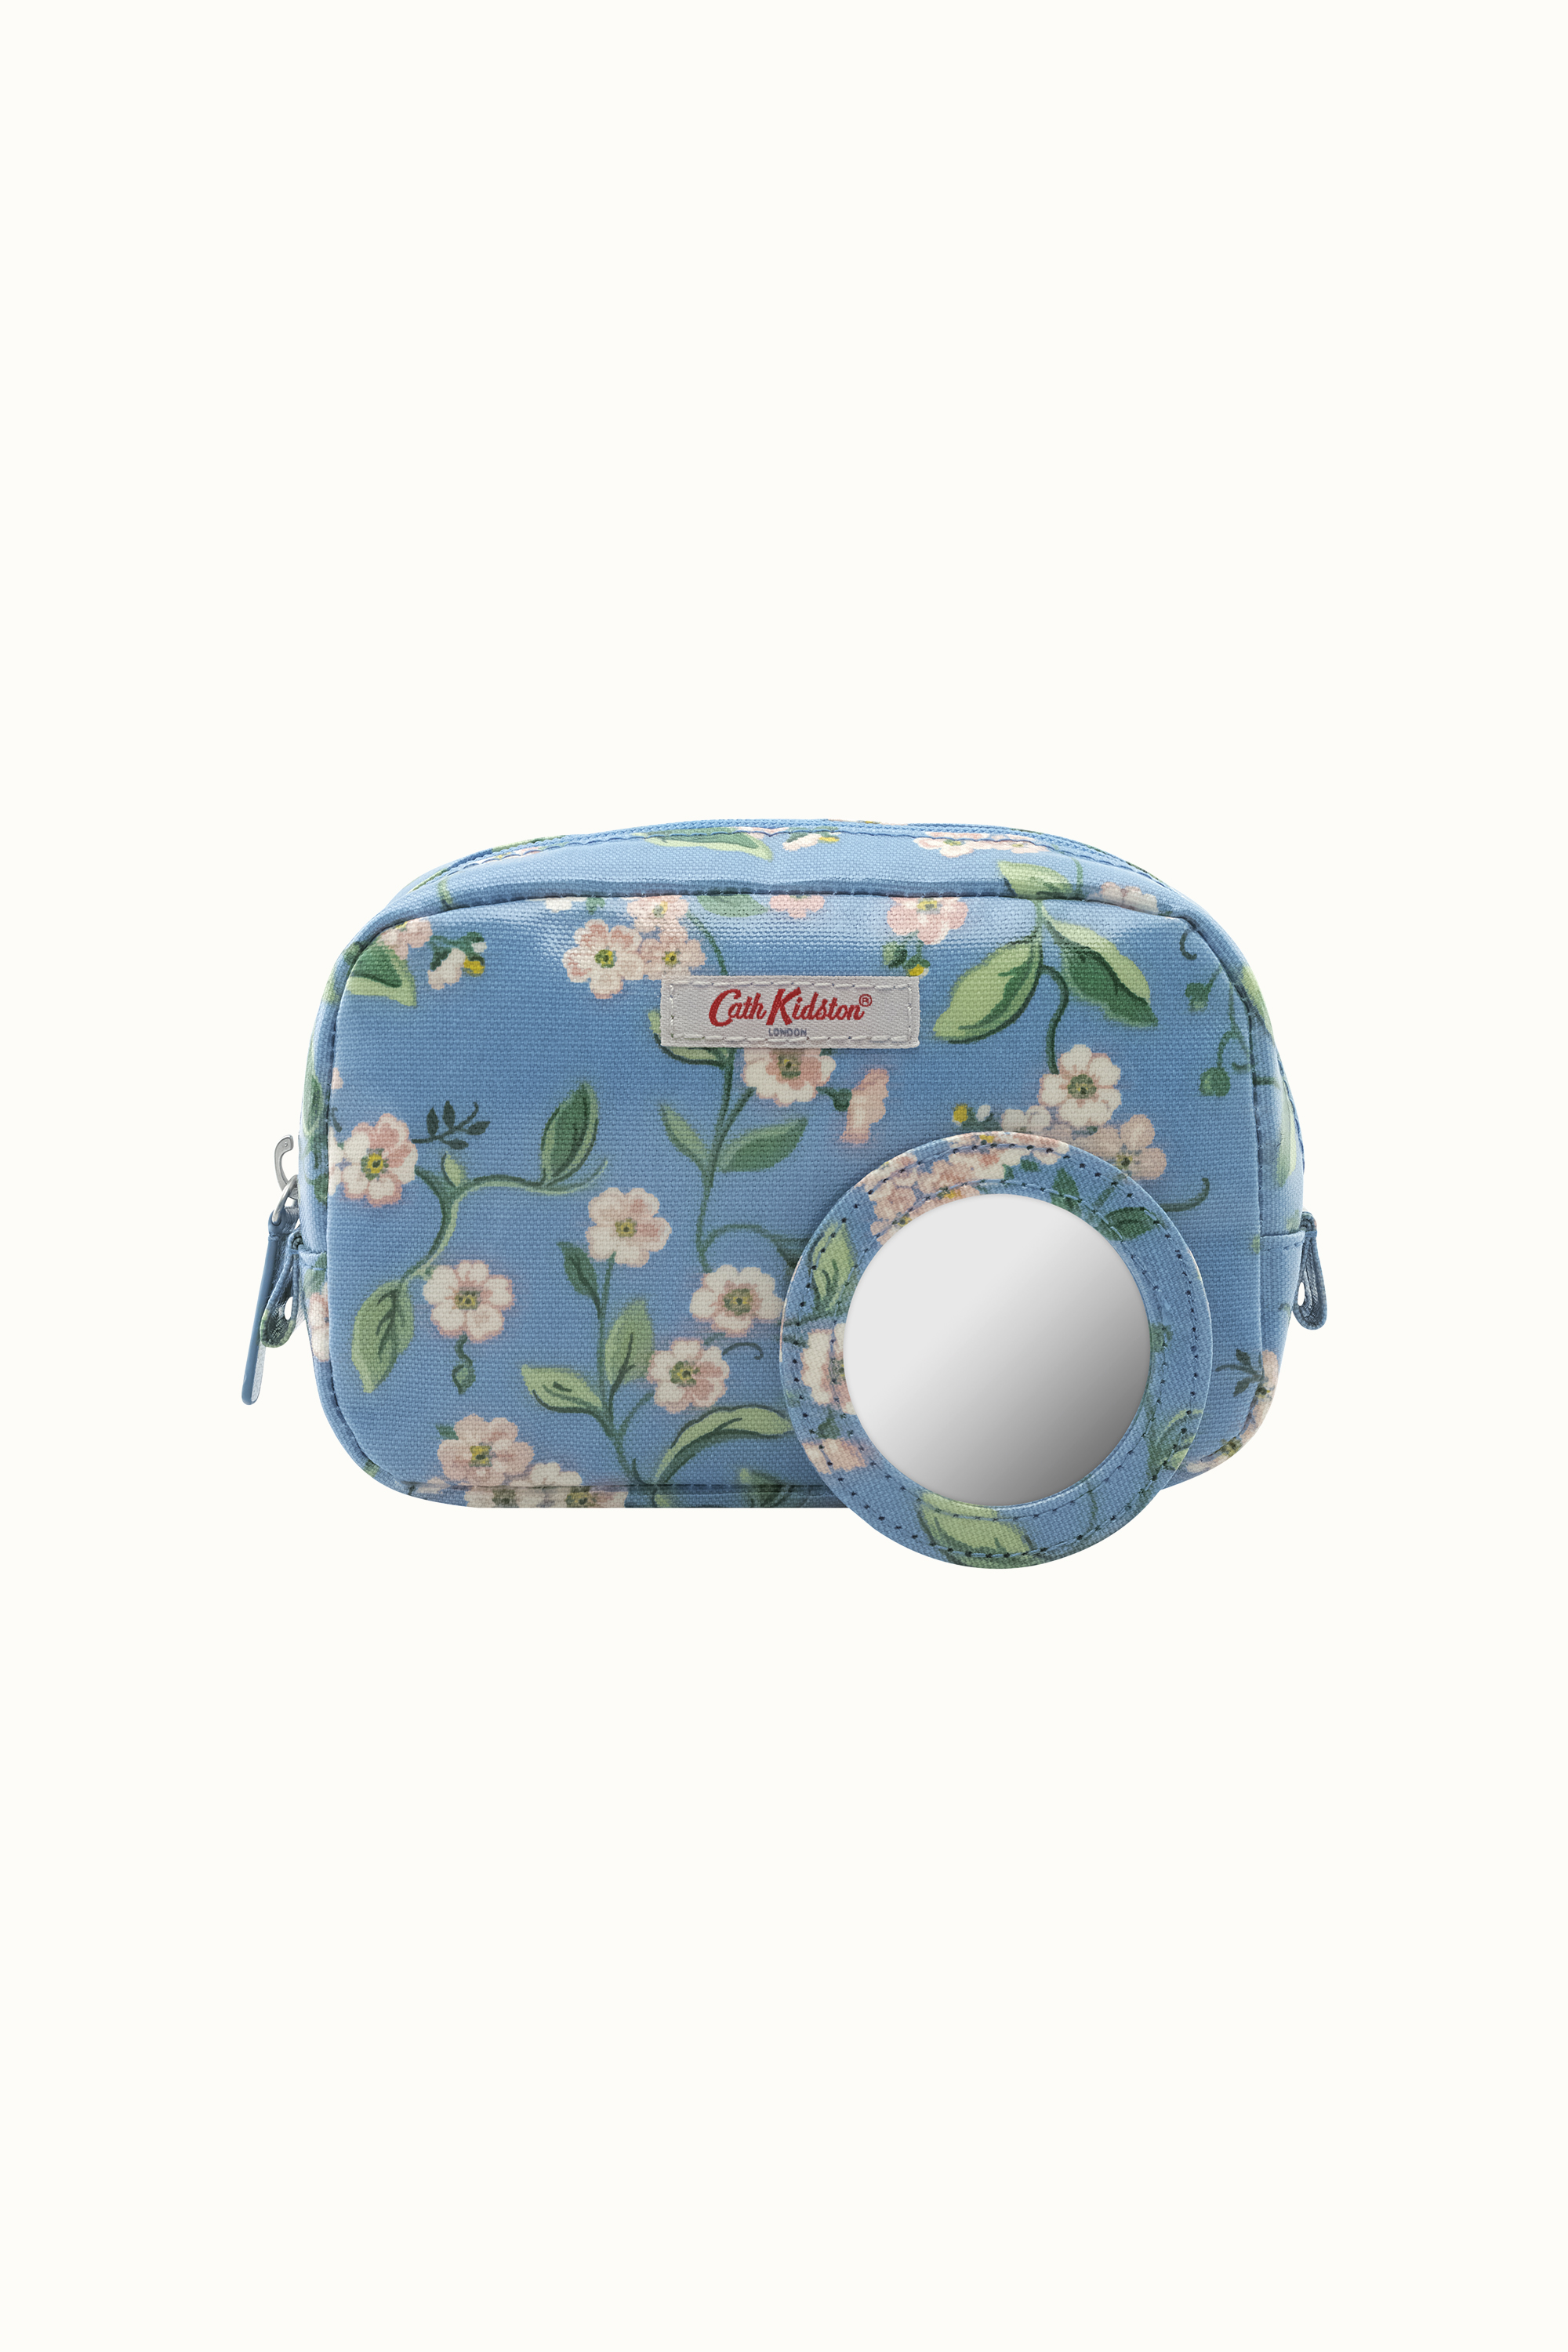 Cath Kidston Forget Me Not Classic Make Up Case in Mid Blue